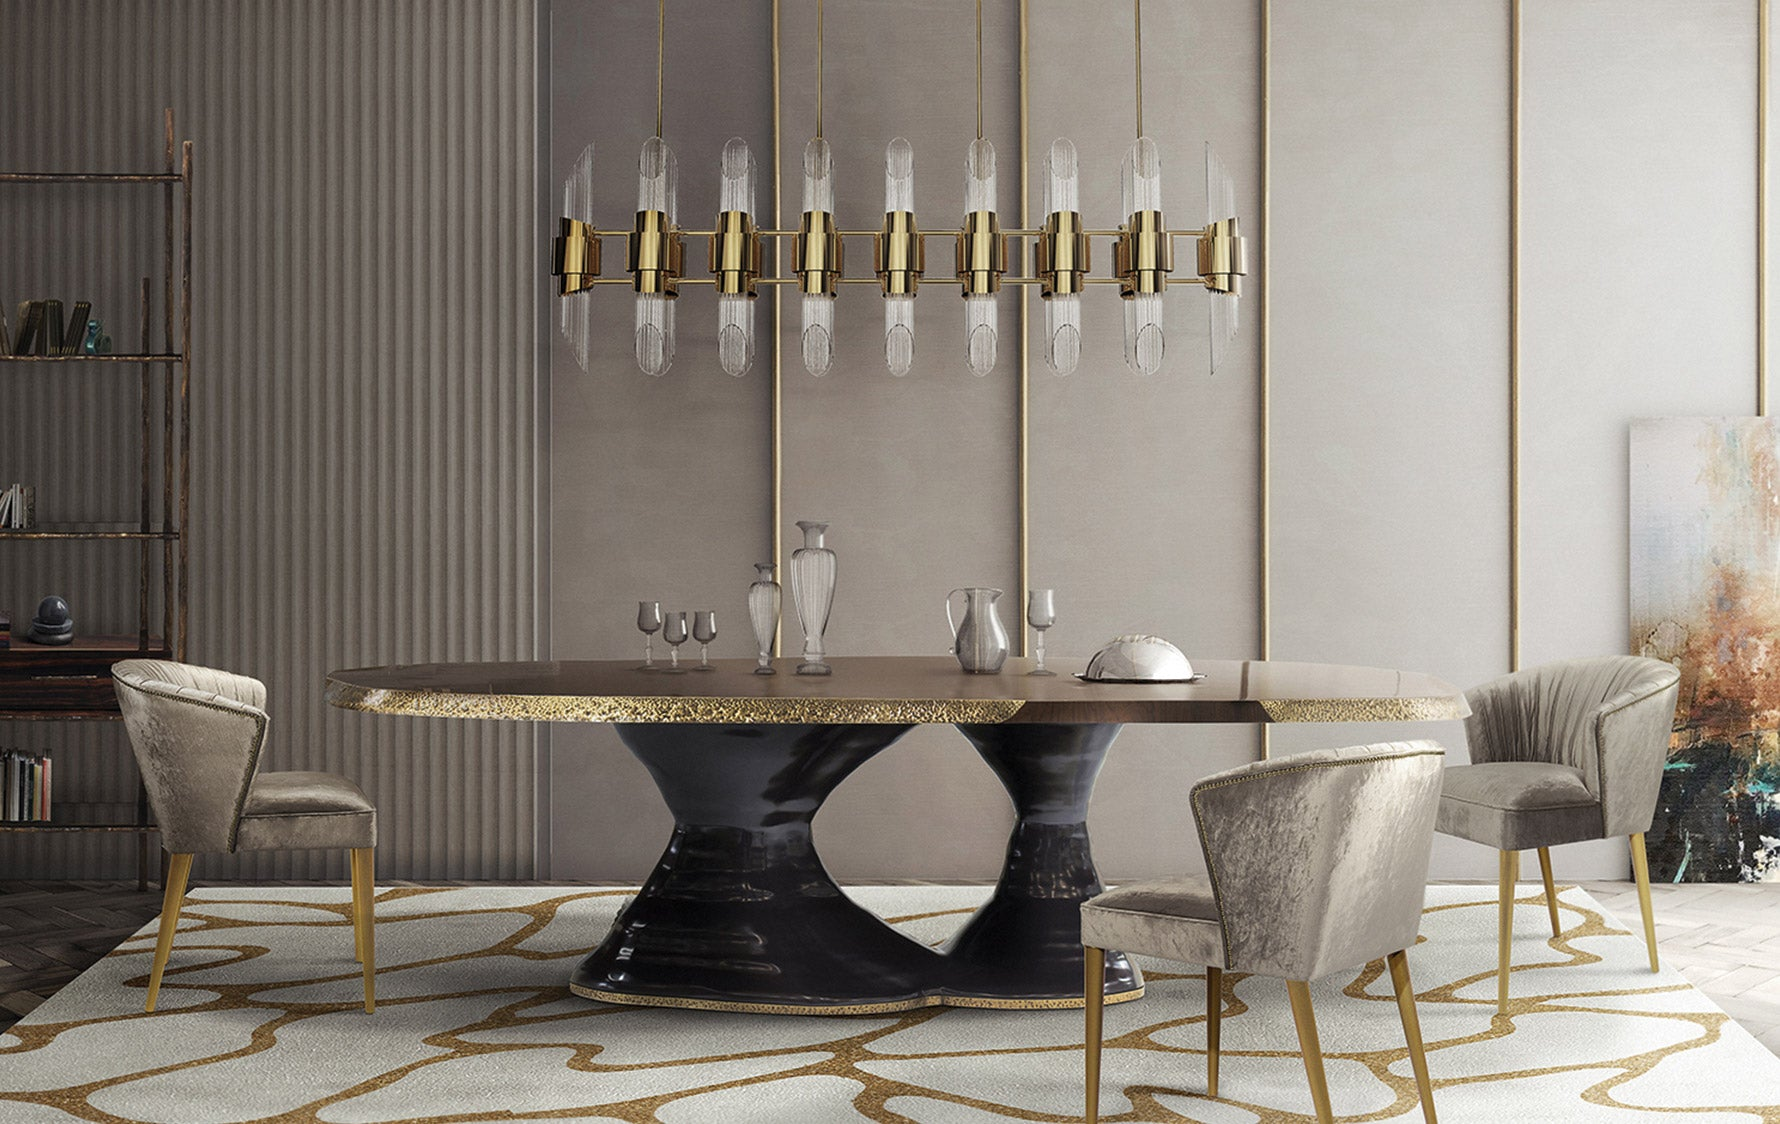 Top 8 Portuguese Furniture Brands You Need To Know | LuxDeco